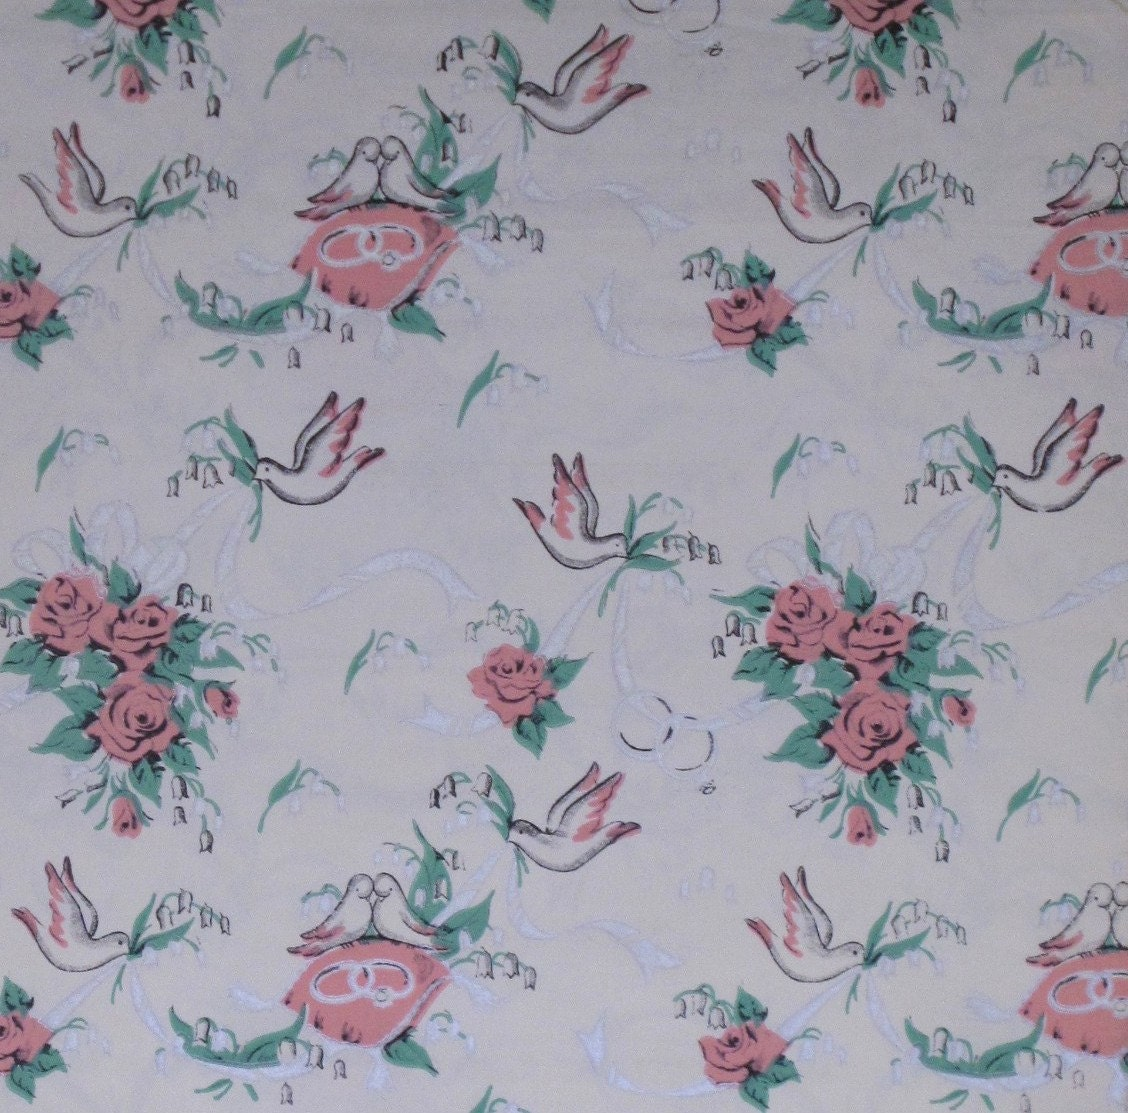 Wedding Gift Wrap : Vintage Mid-Century WEDDING Gift Wrap Wrapping Paper - DOVES Rings and ...